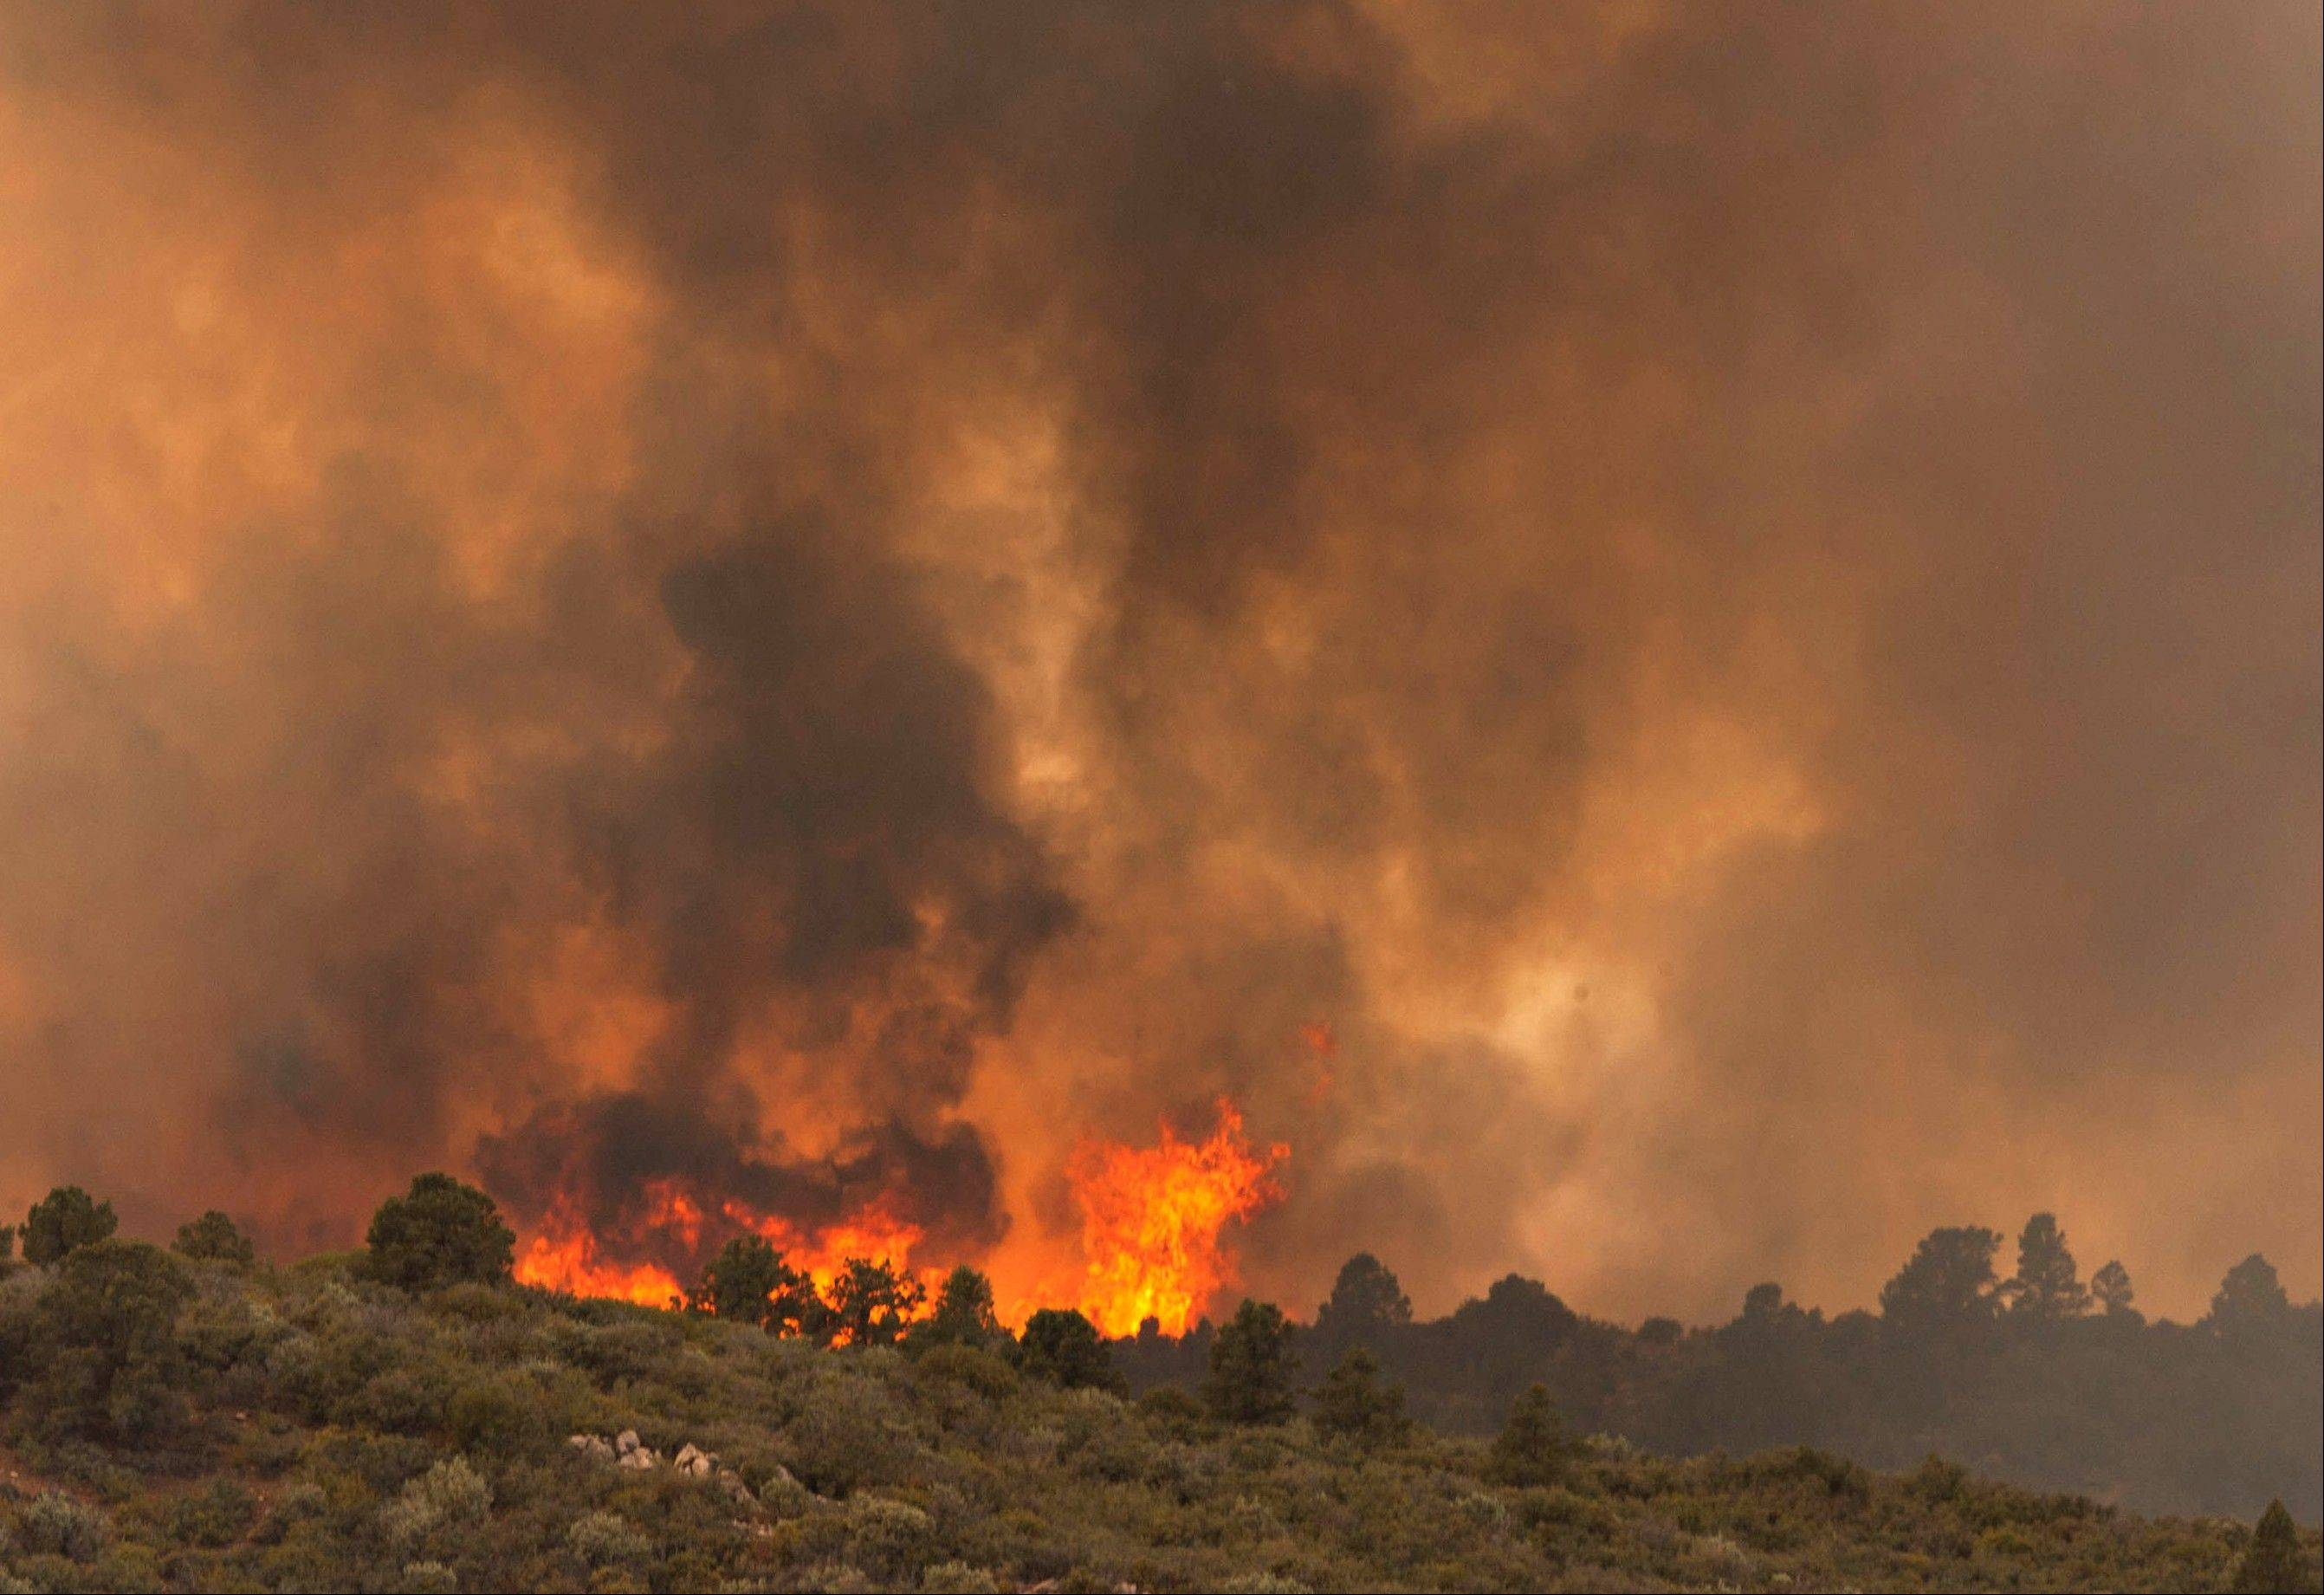 Flames top a ridge as the Yarnell Hill Fire moves toward Peeples Valley, Arizona on Sunday, June 30, 2013.